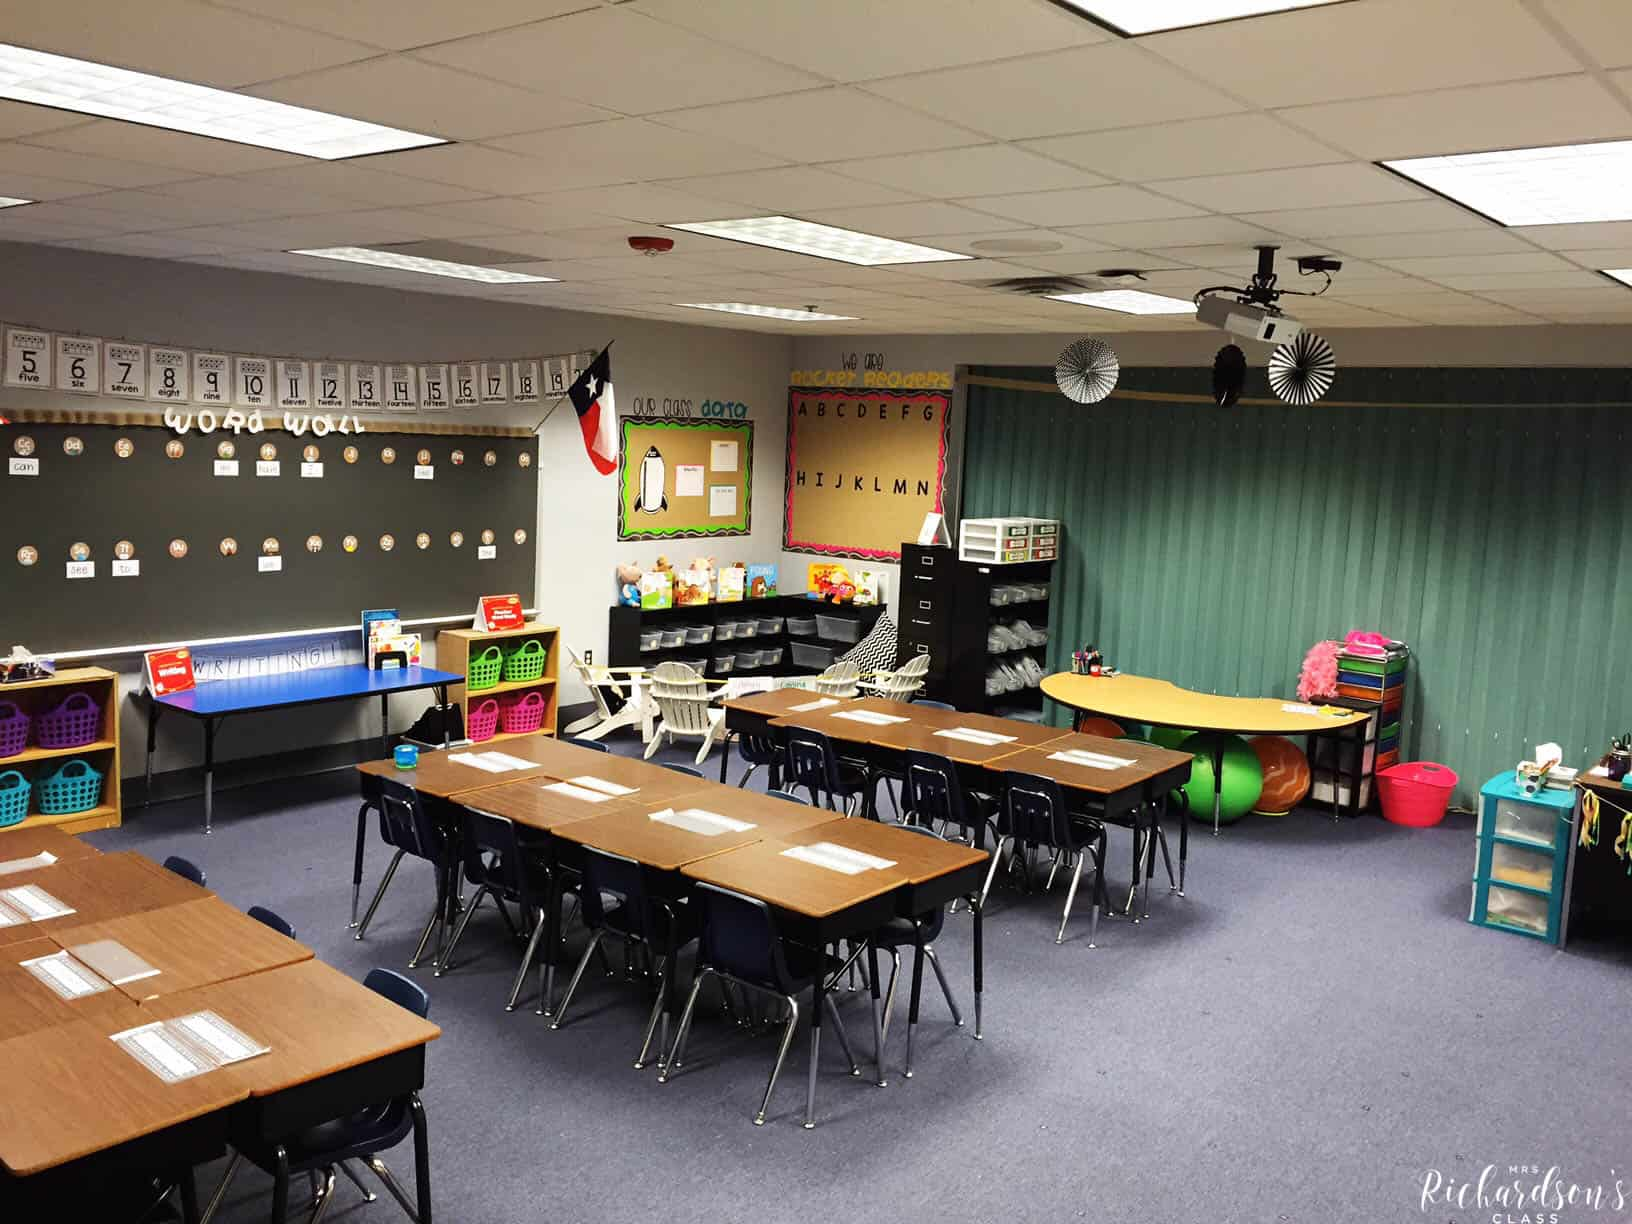 Chalkboard, burlap, and bright classroom decor that is simple and affordable! I love how inviting this learning environment is, too!